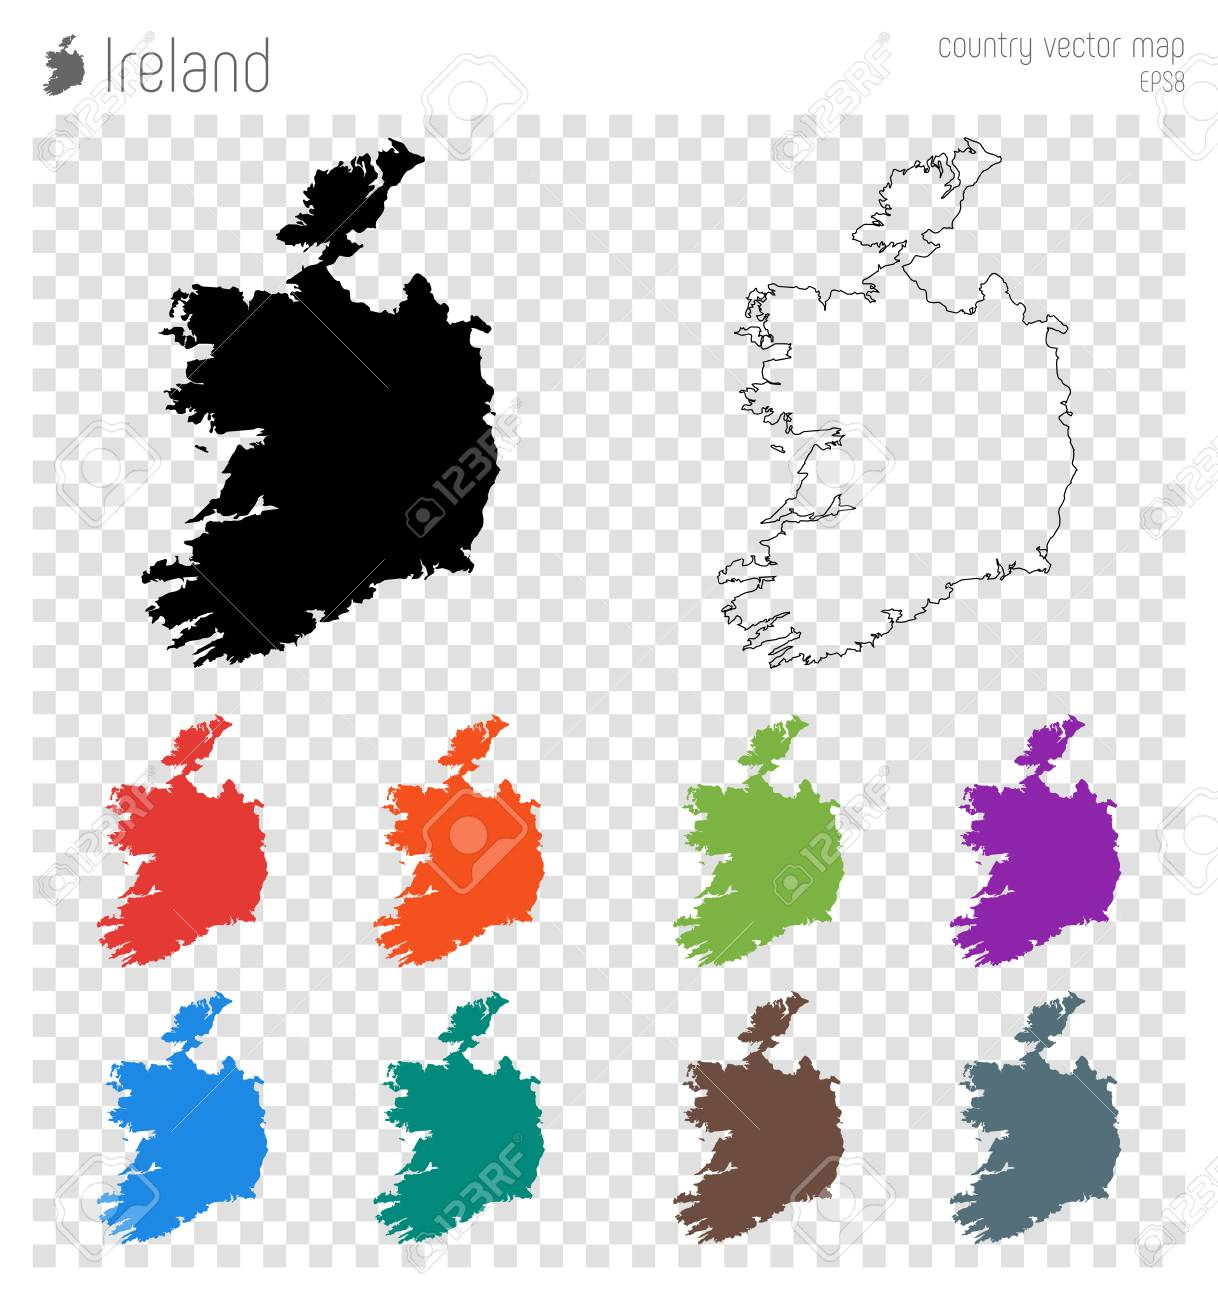 Detailed Map Of Ireland Vector.Ireland High Detailed Map Country Silhouette Icon Isolated